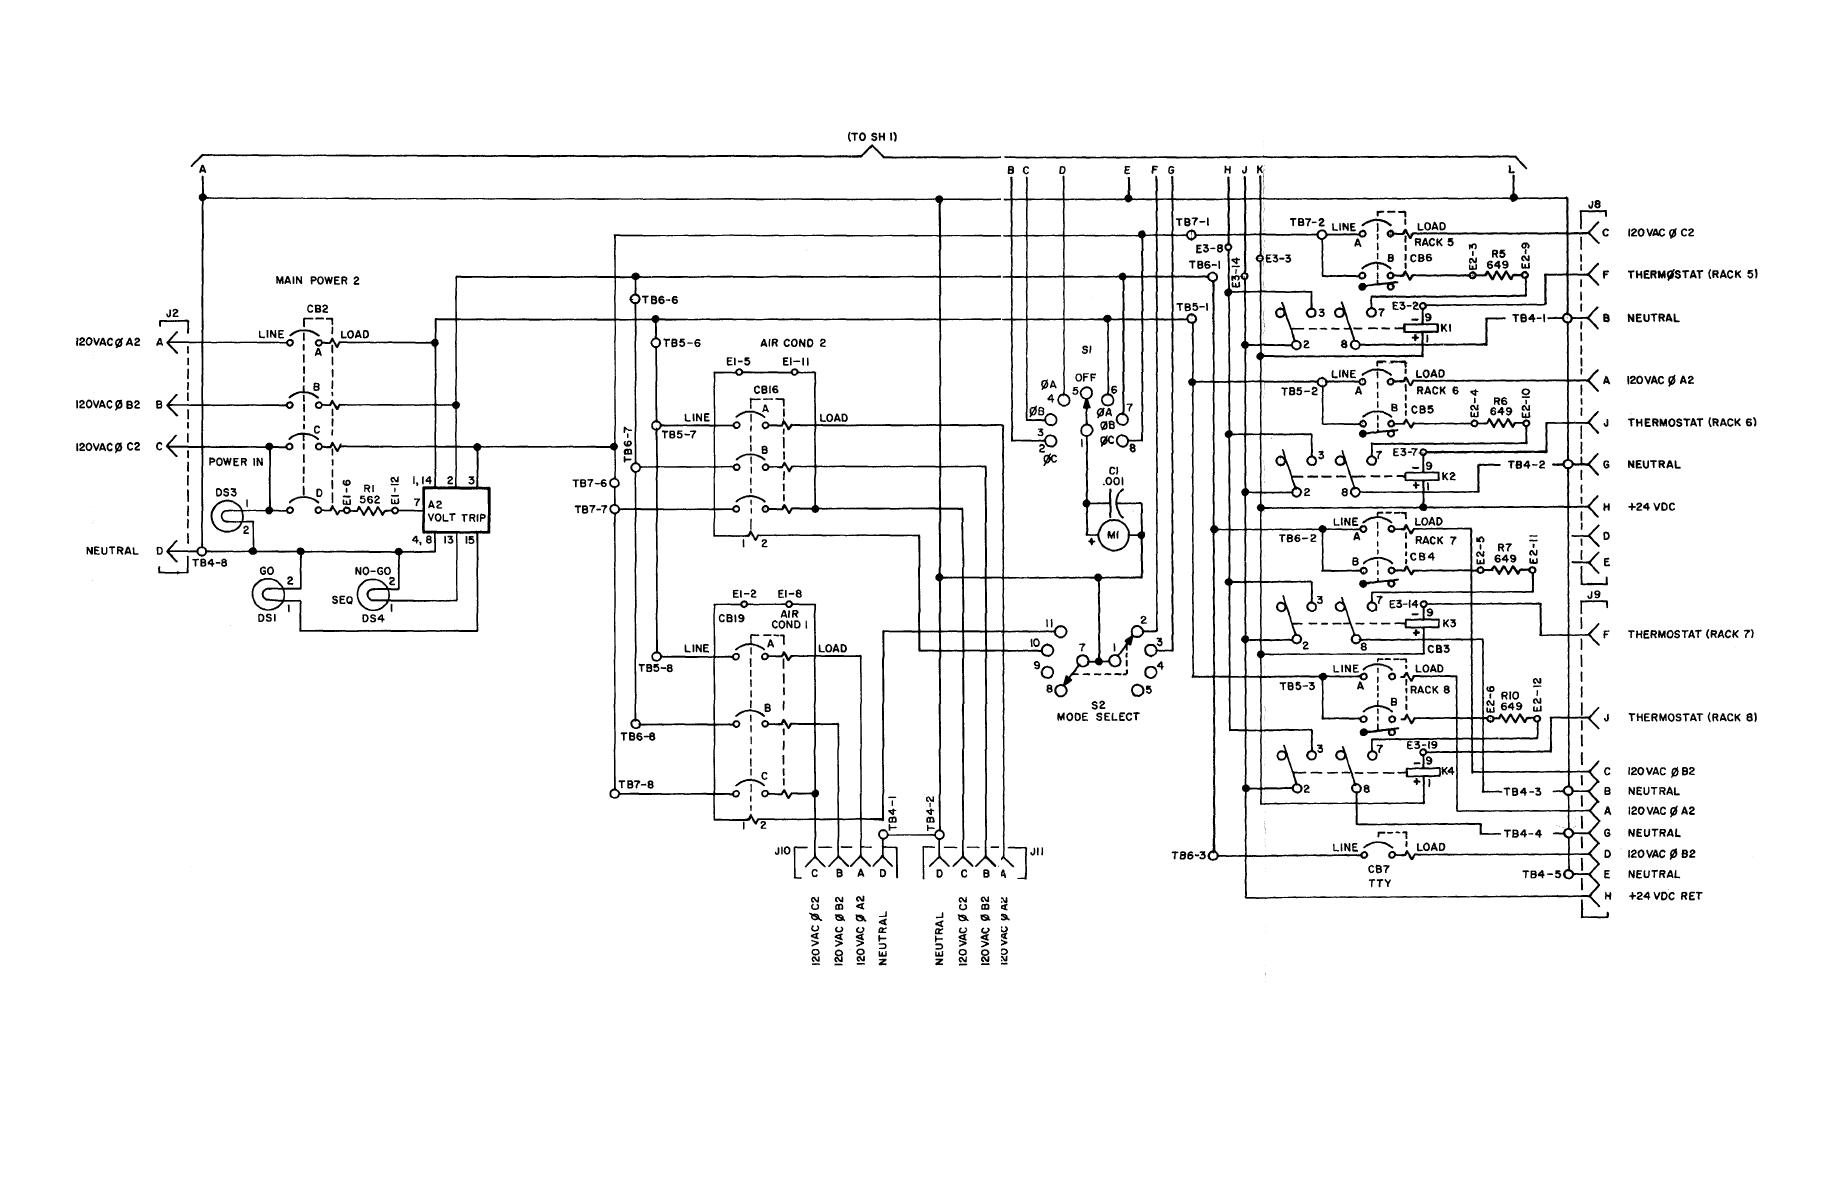 Figure FO-6. Power Distribution Panel, Schematic Wiring